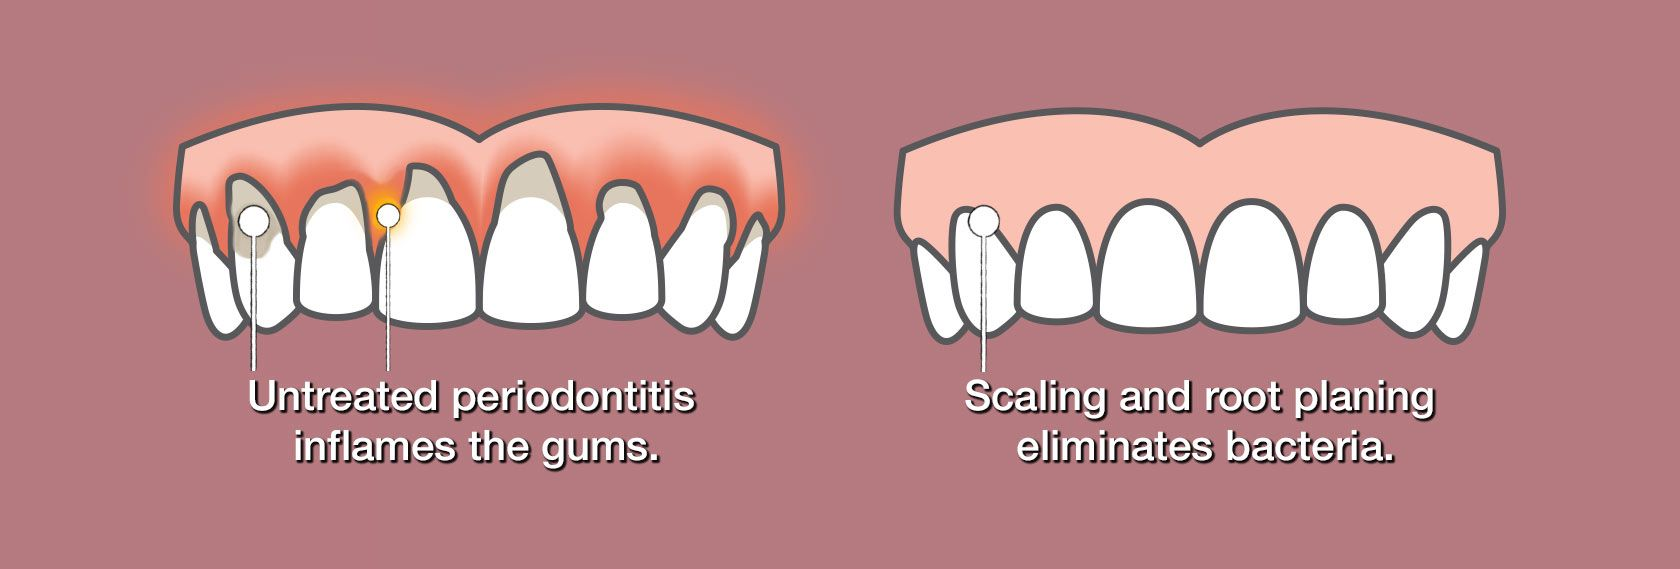 Comparison of gums affected by periodontal disease and healthy gums.